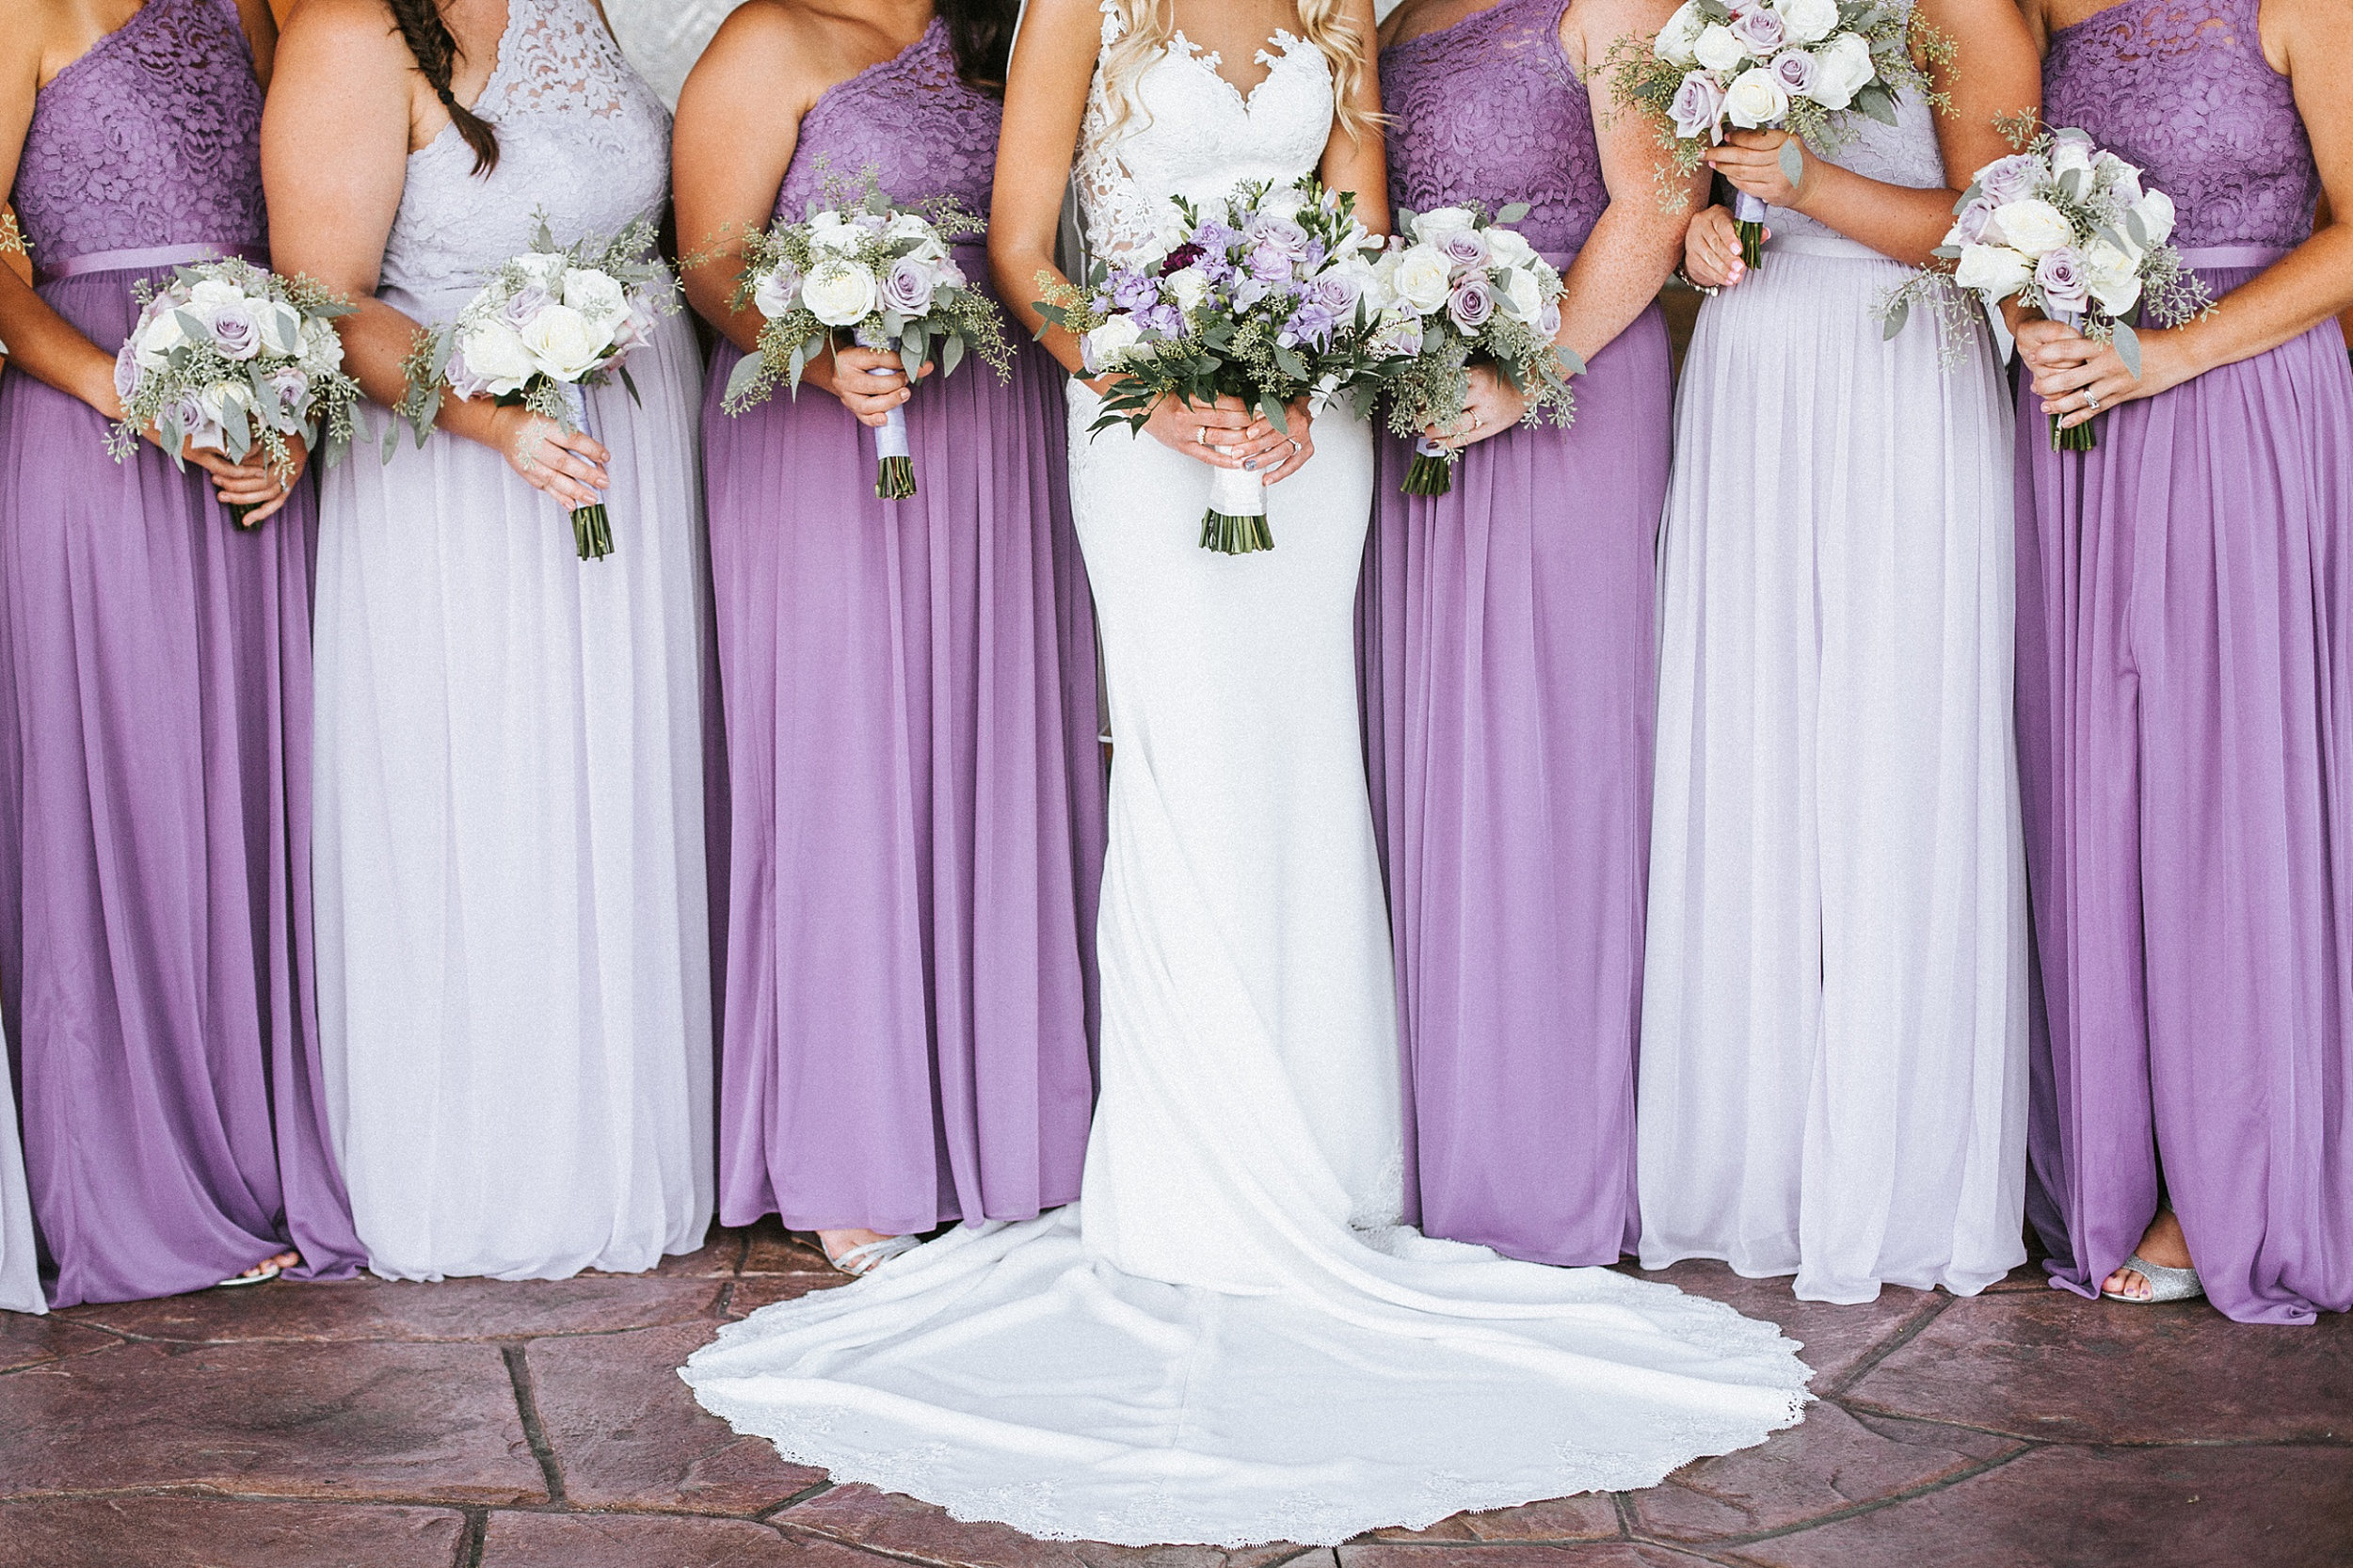 Brooke Townsend Photography - Cincinnati Wedding Photographer (44 of 230).jpg